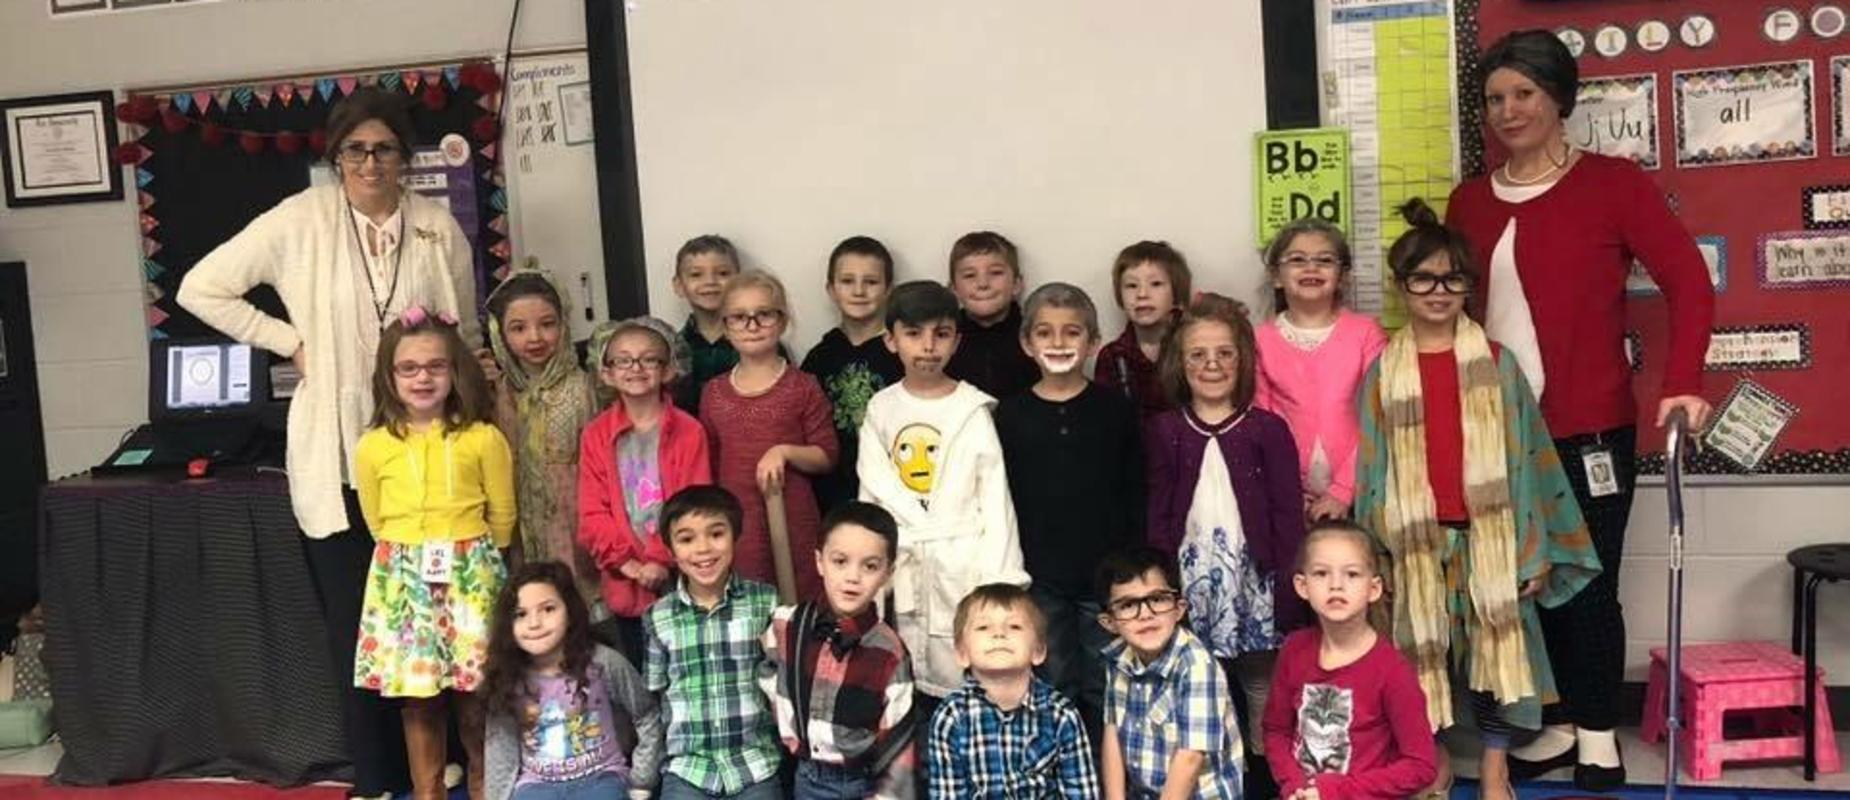 Kindergarten class on the 100th day of school